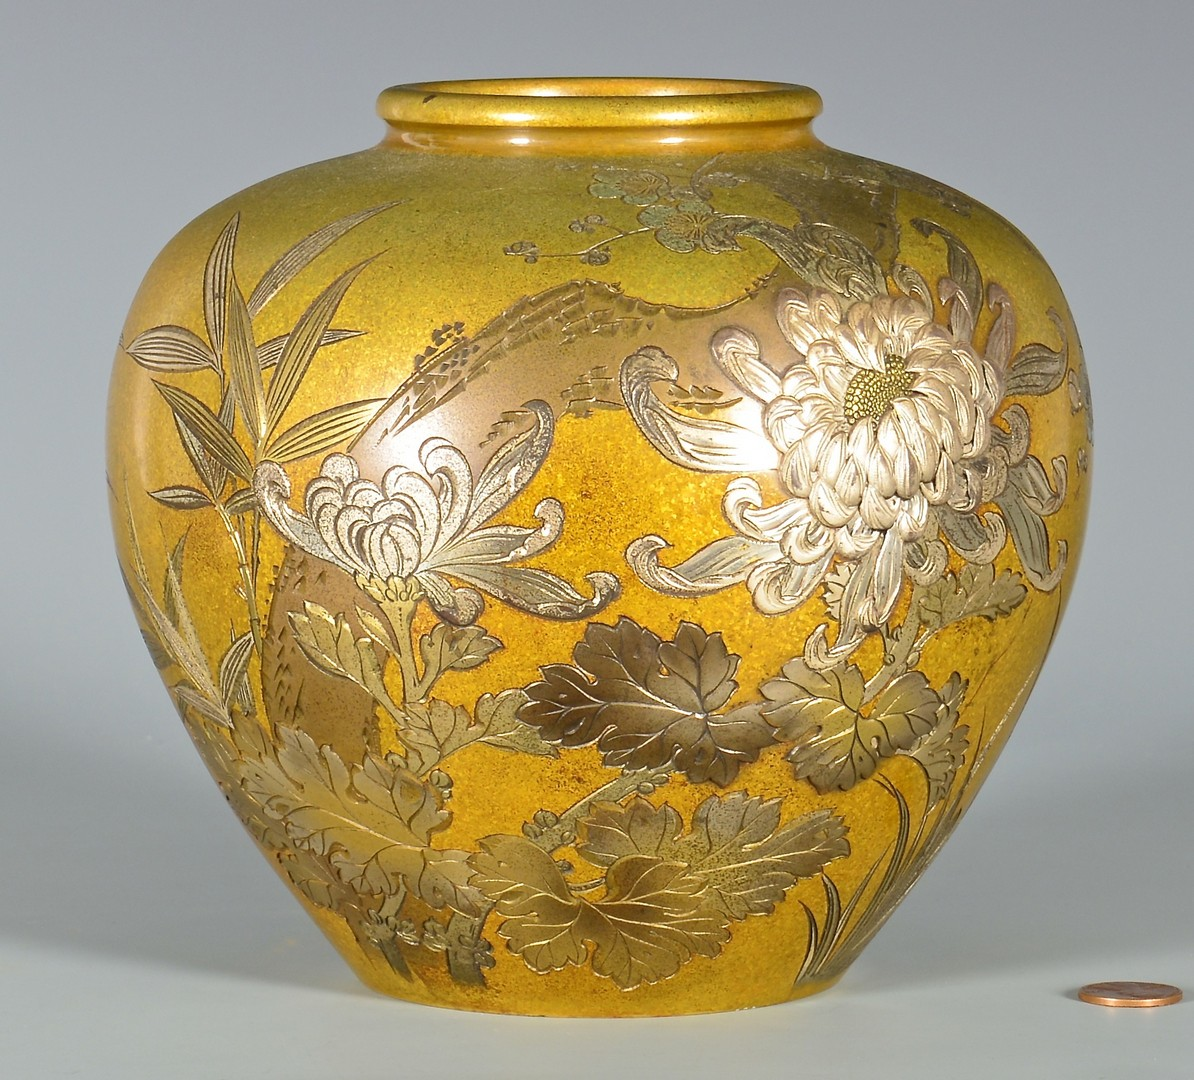 Lot 4010086: Japanese Gilt Bronze Inlaid Vase